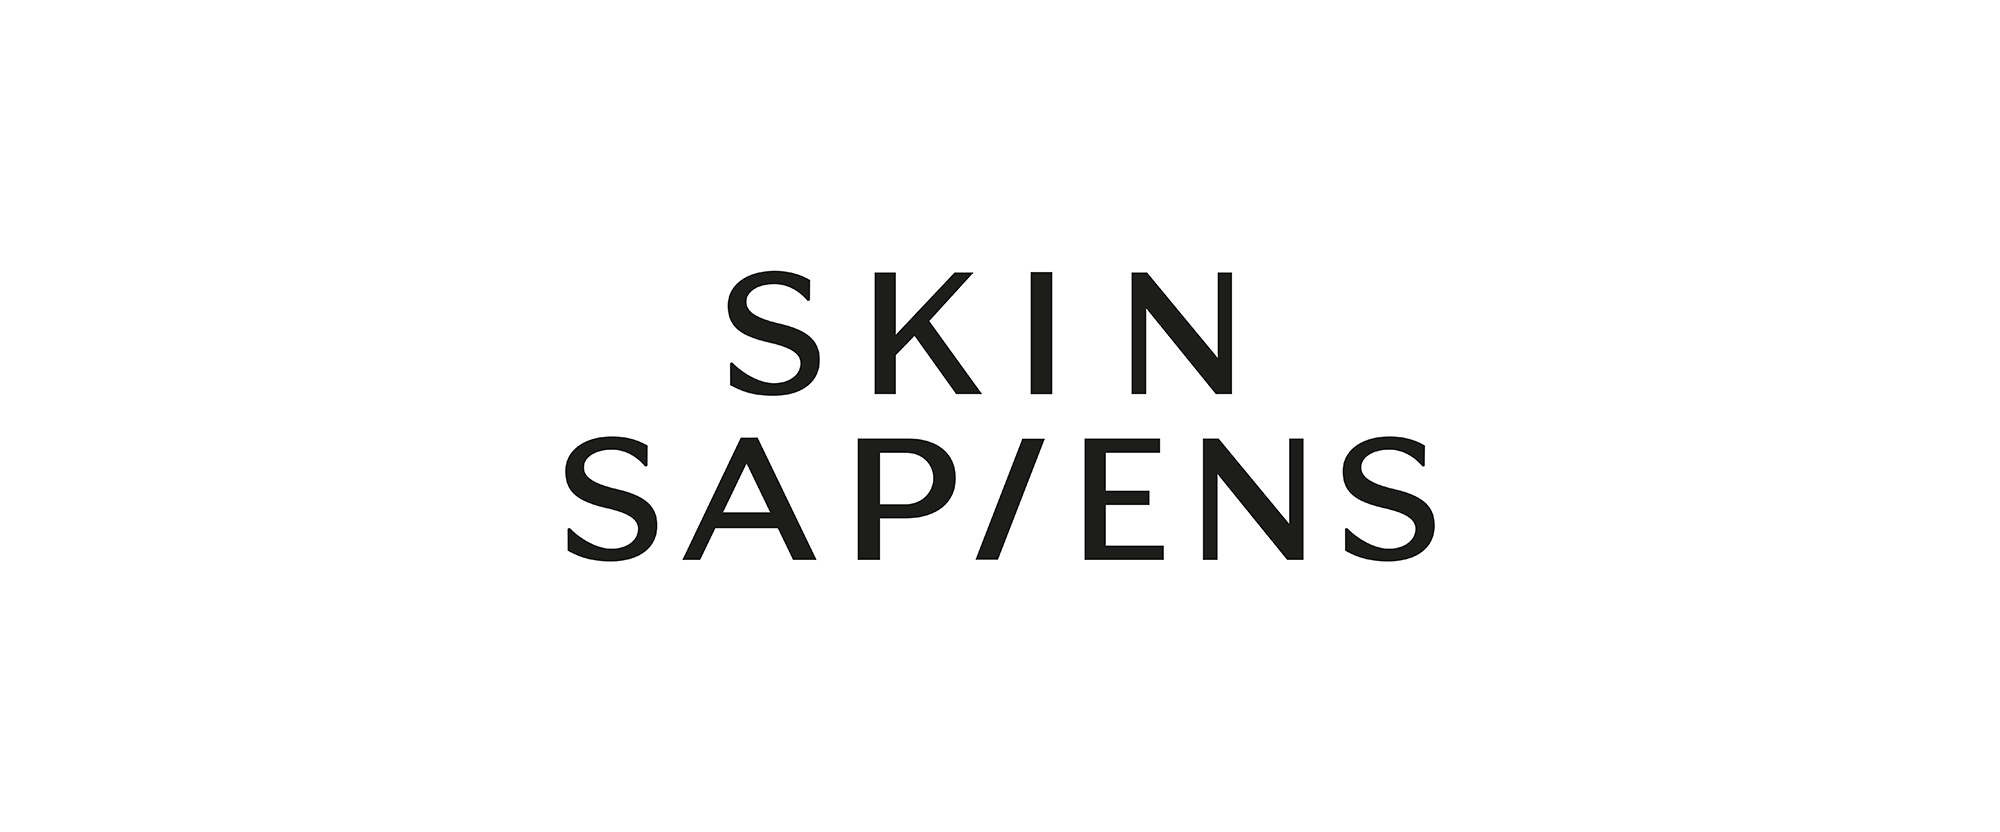 New Logo and Packaging for Skin Sapiens by Lewis Moberly